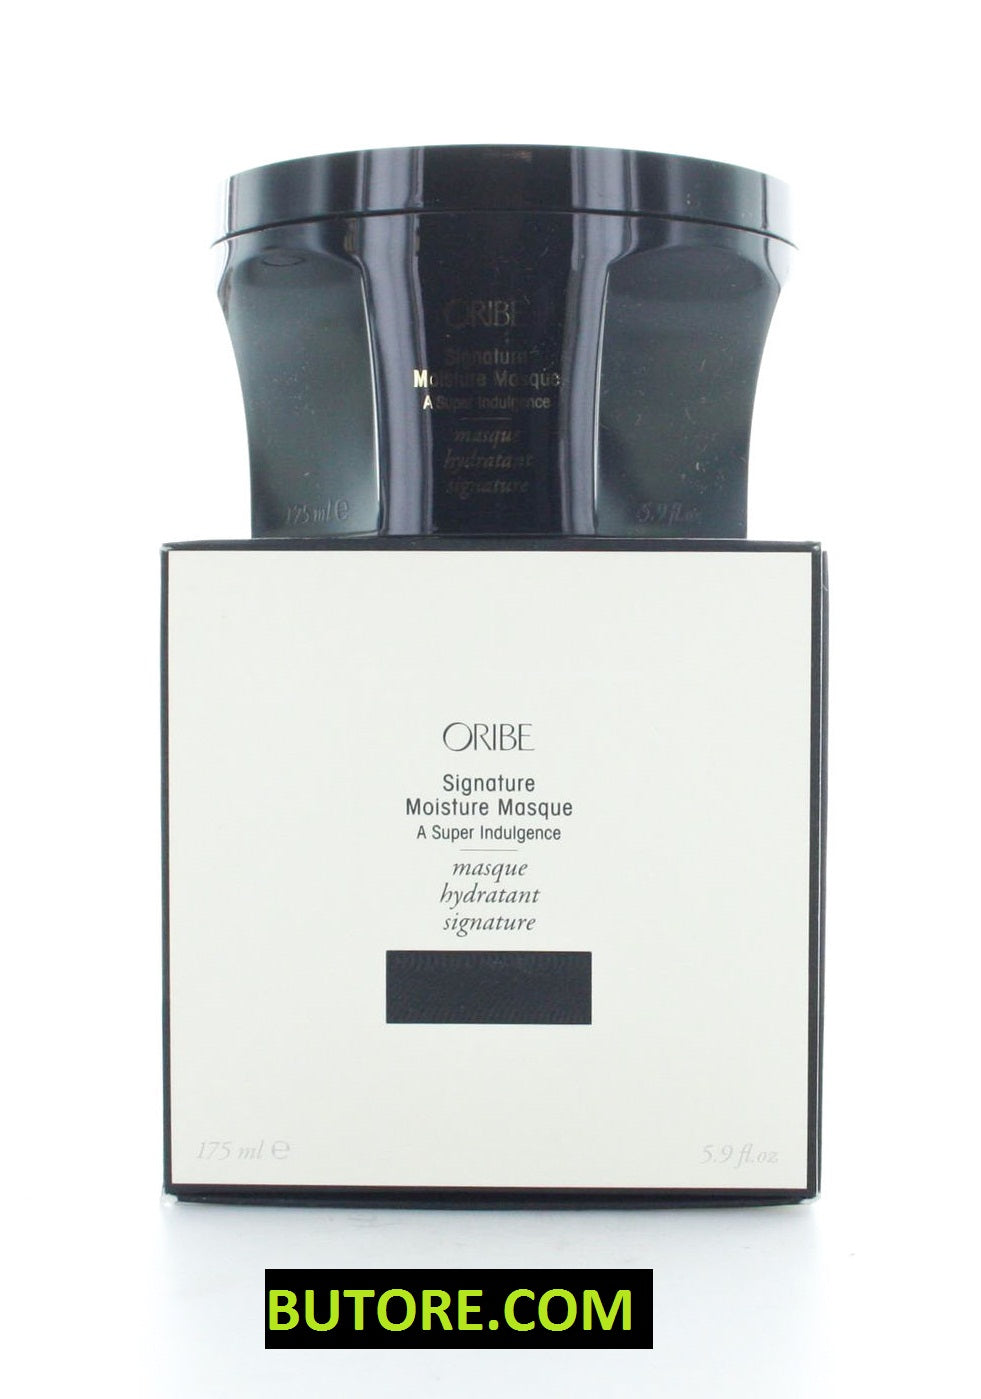 Oribe Signature Moisture Masque 5.9oz